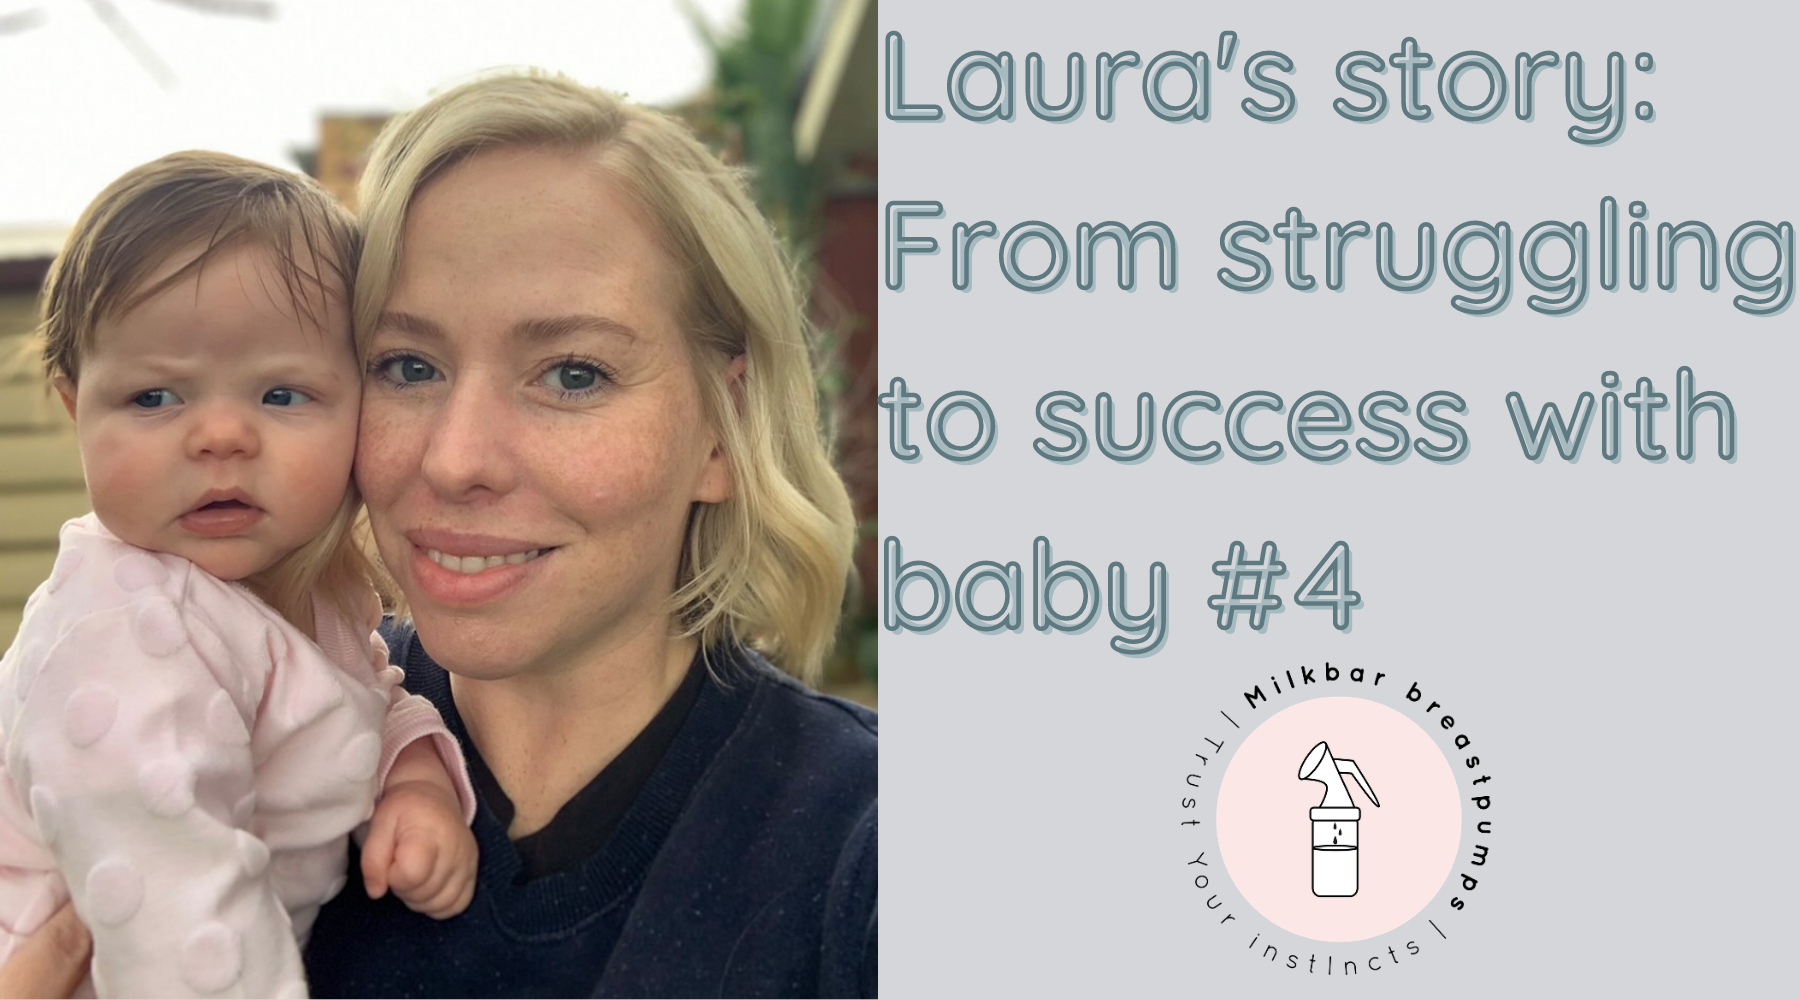 Laura's Story: From struggling to success with baby #4